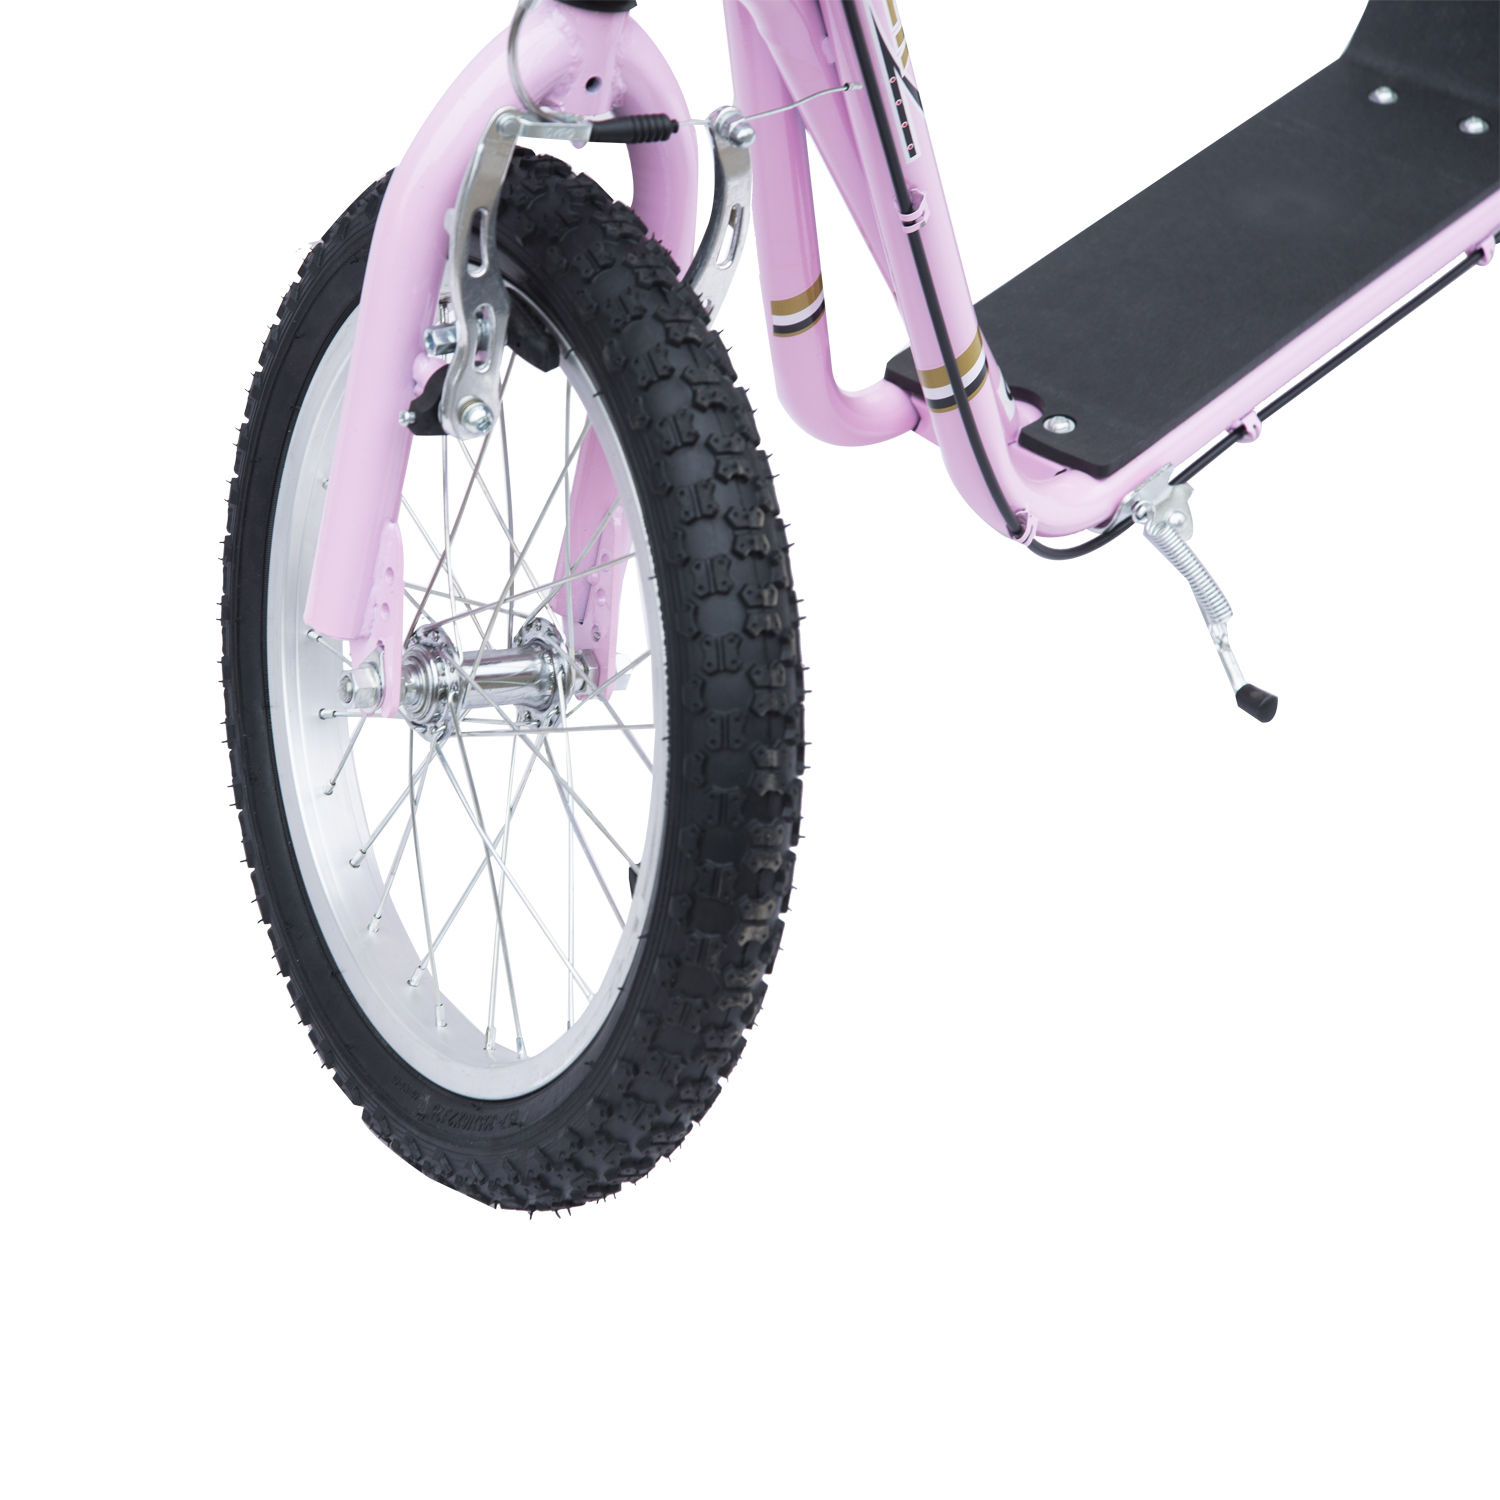 Adjustable-Teen-Kick-Scooter-Kids-Ride-On-Stunt-Street-Bike-16-034-Tire thumbnail 15